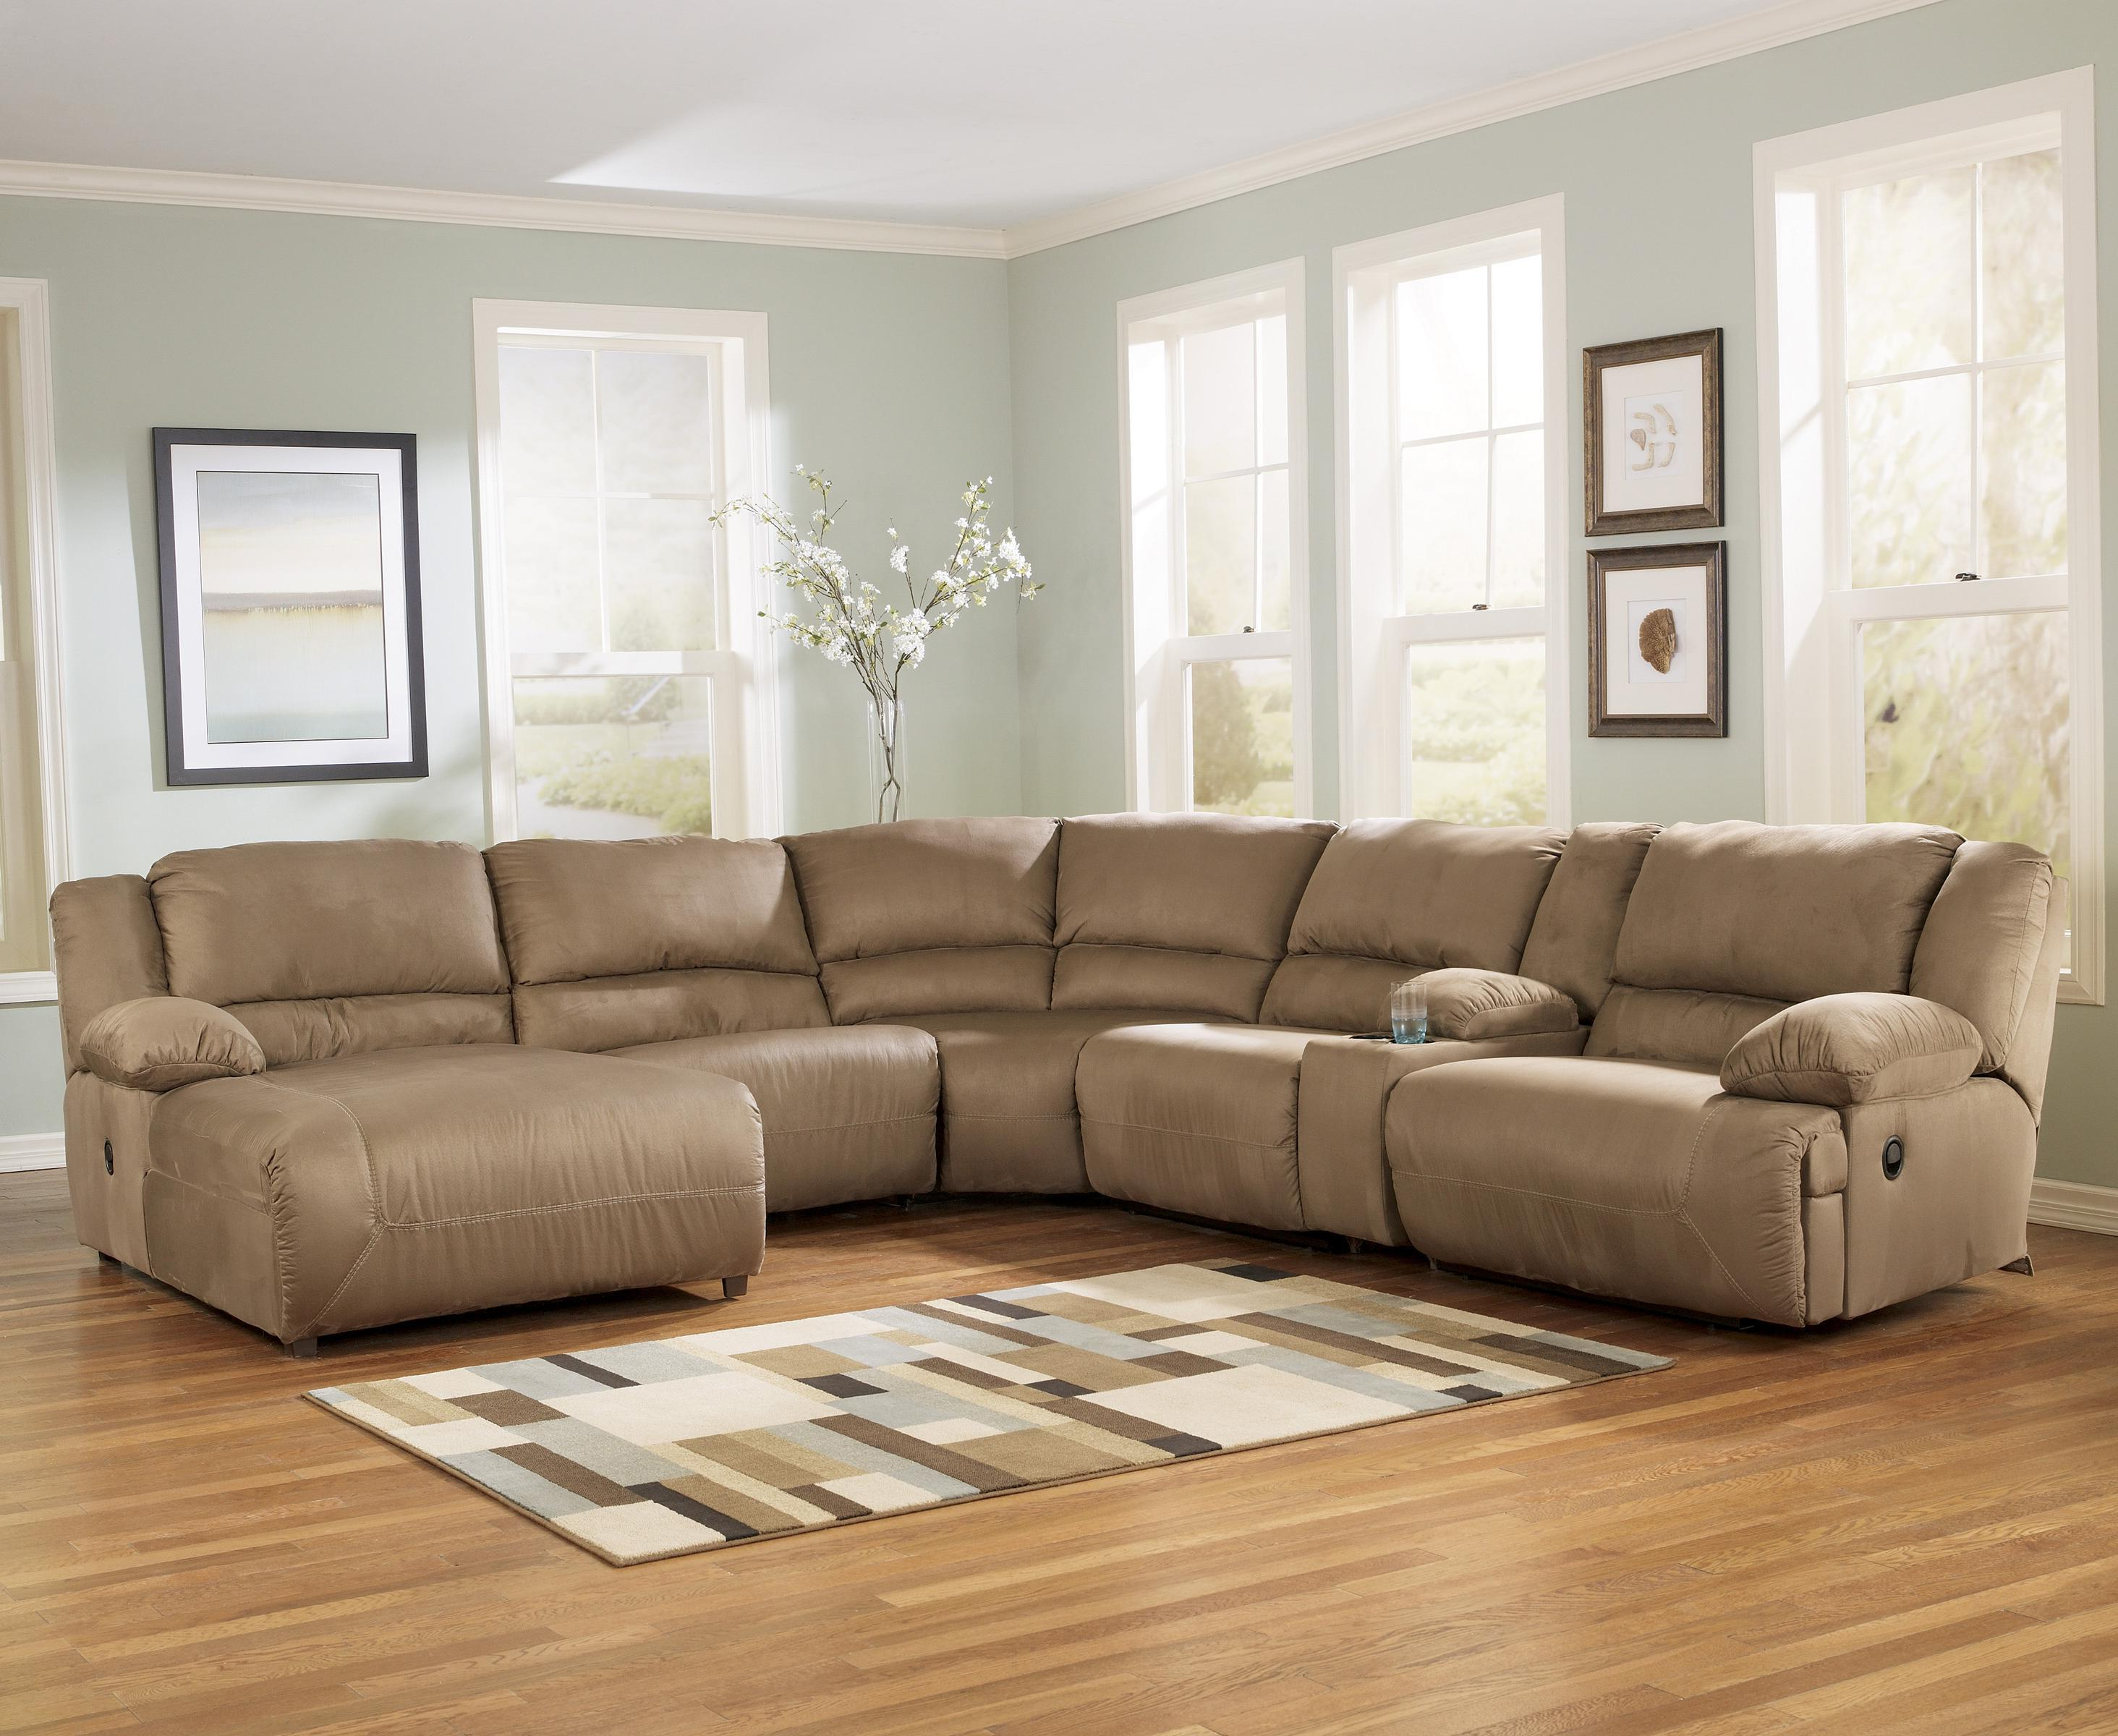 Signature Design By Ashley Hogan Mocha 6 Piece Motion Sectional With Left Chaise And Console